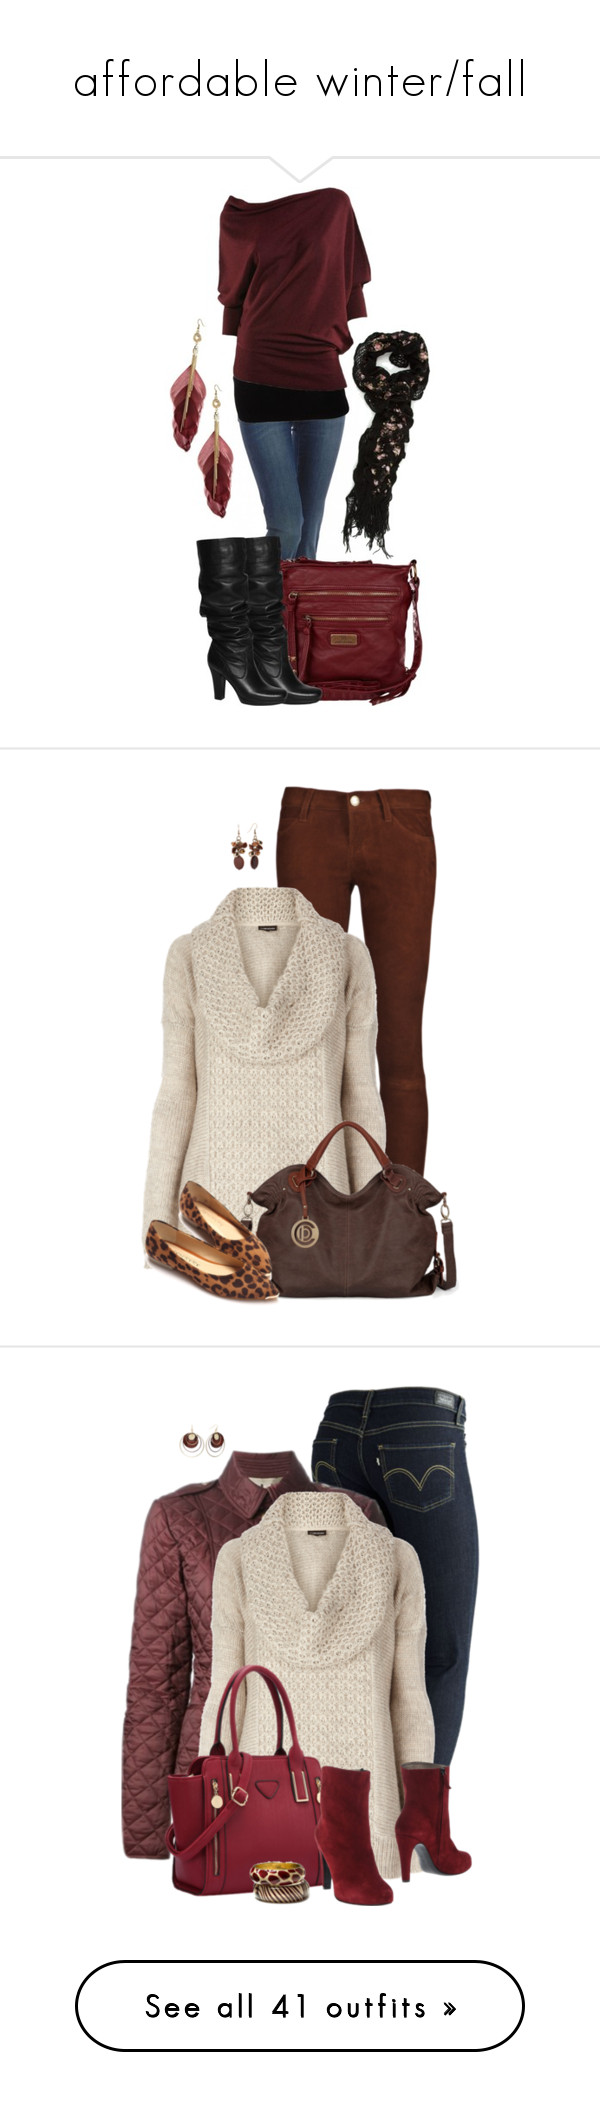 """""""affordable winter/fall"""" by lolo-umbarger ❤ liked on Polyvore featuring 7 For All Mankind, River Island, Unisa, Michael Kors, Max Studio, Current/Elliott, Sonoma life + style, Levi's, Burberry and New York Industrie"""